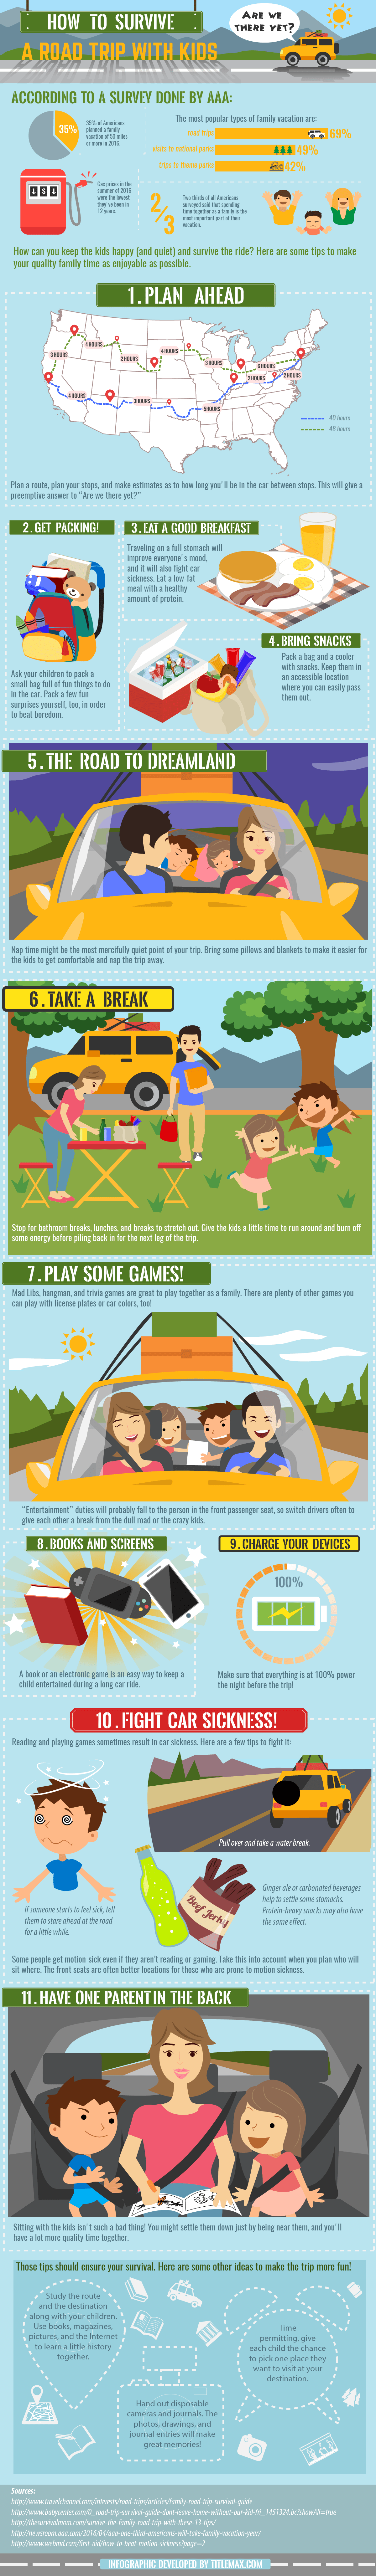 Road Trip Survival Guid with Young Kids [Infographic] - TitleMax Title Loans